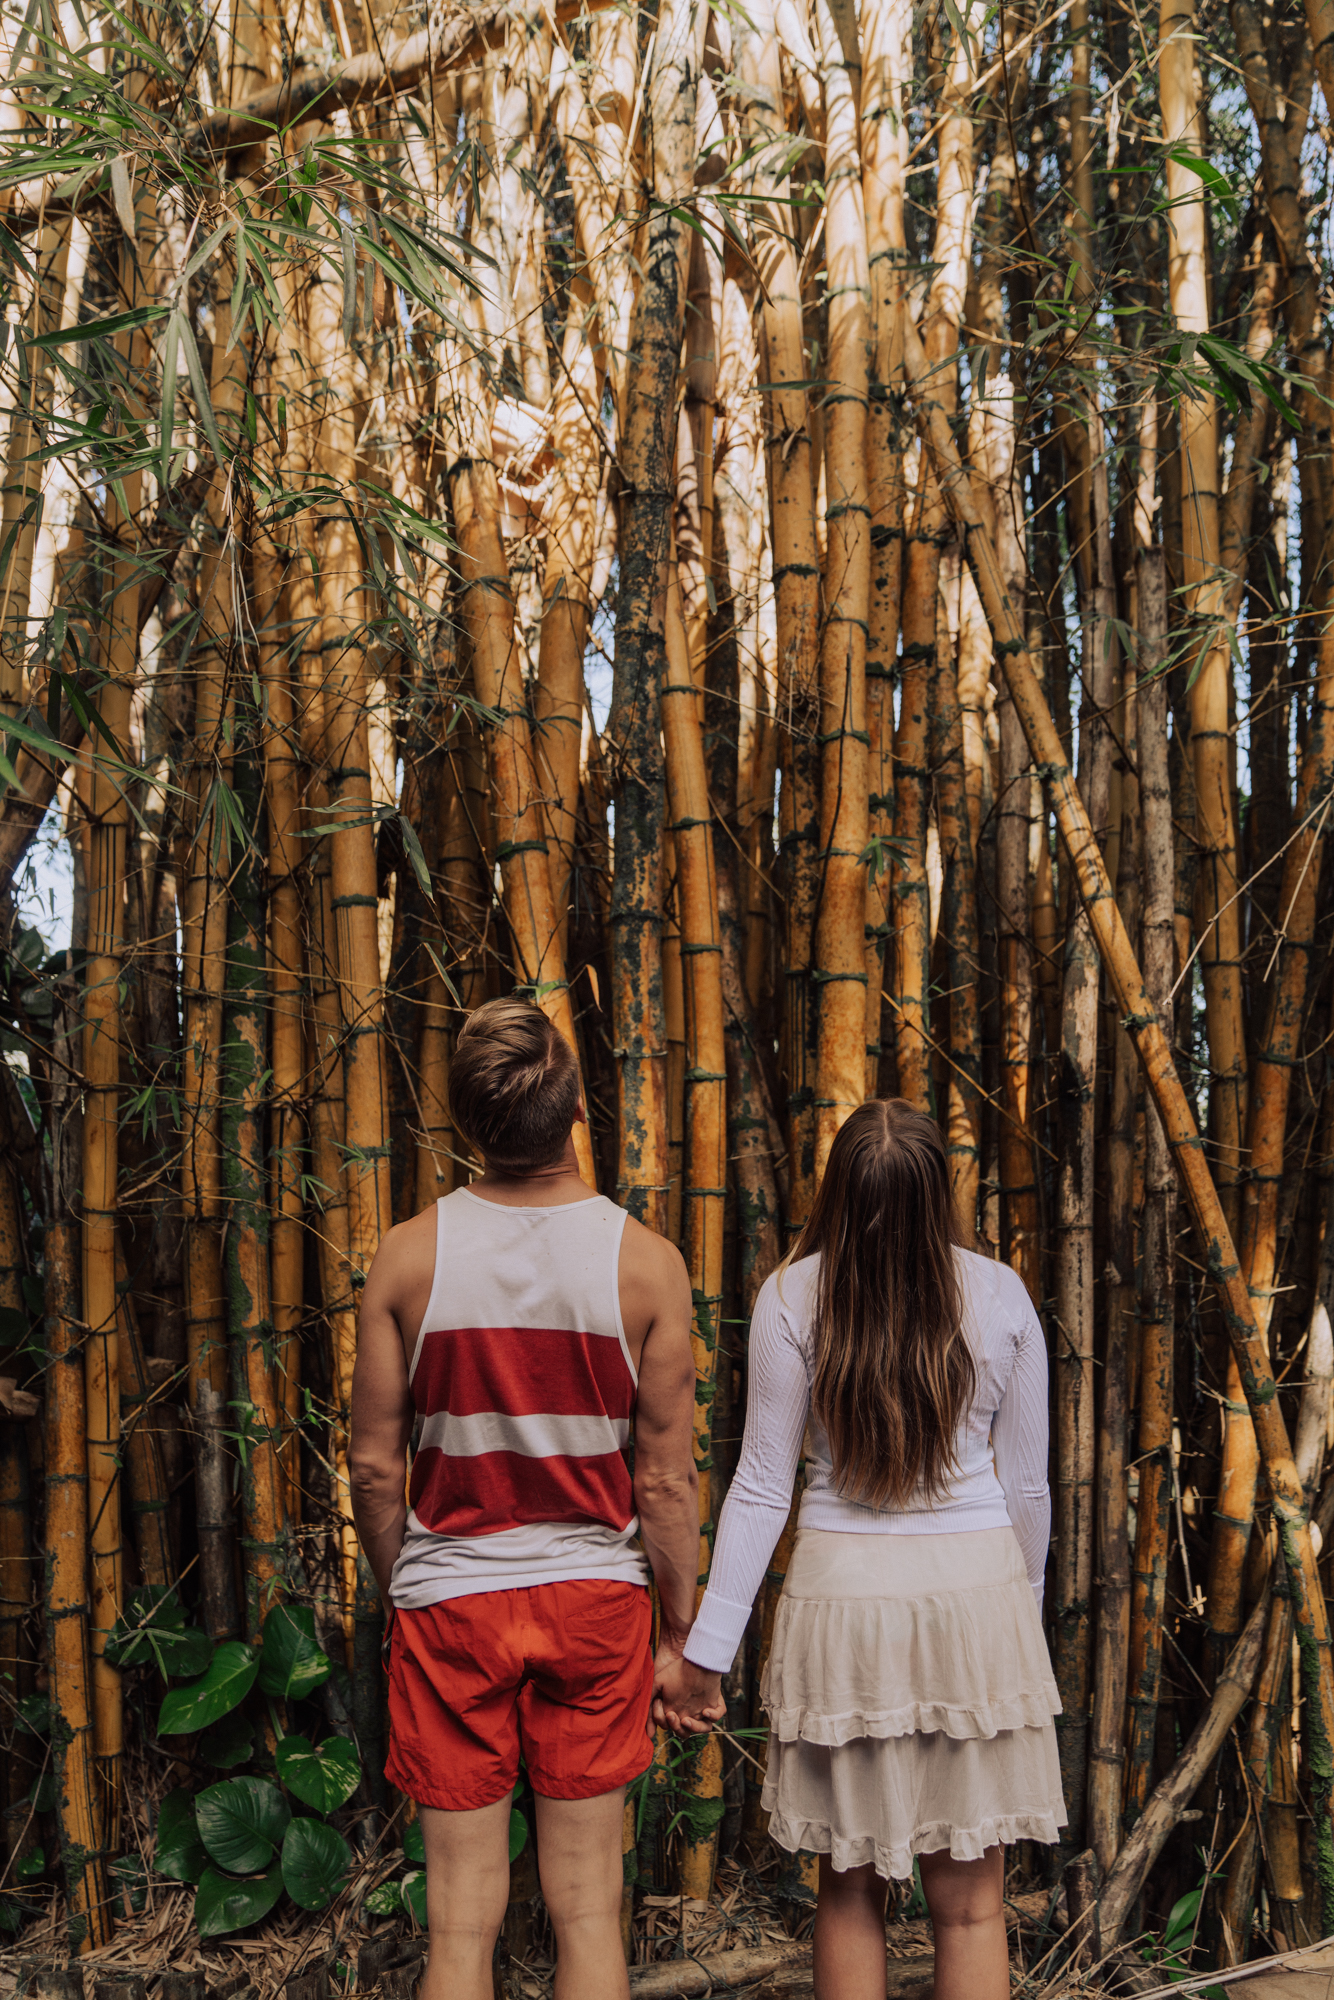 a young couple holding hands looking up at yellow bamboo shoots.